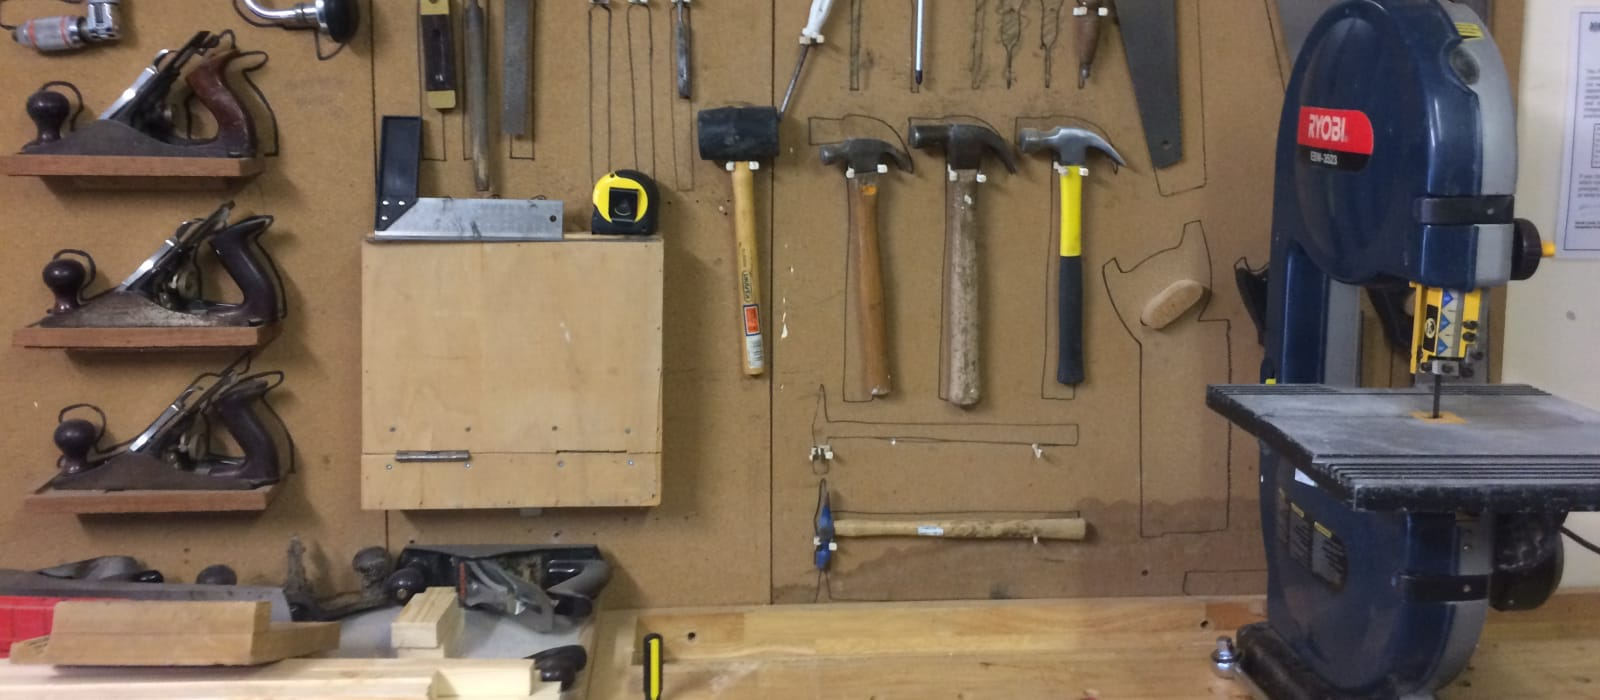 Woodwork tools on a wall